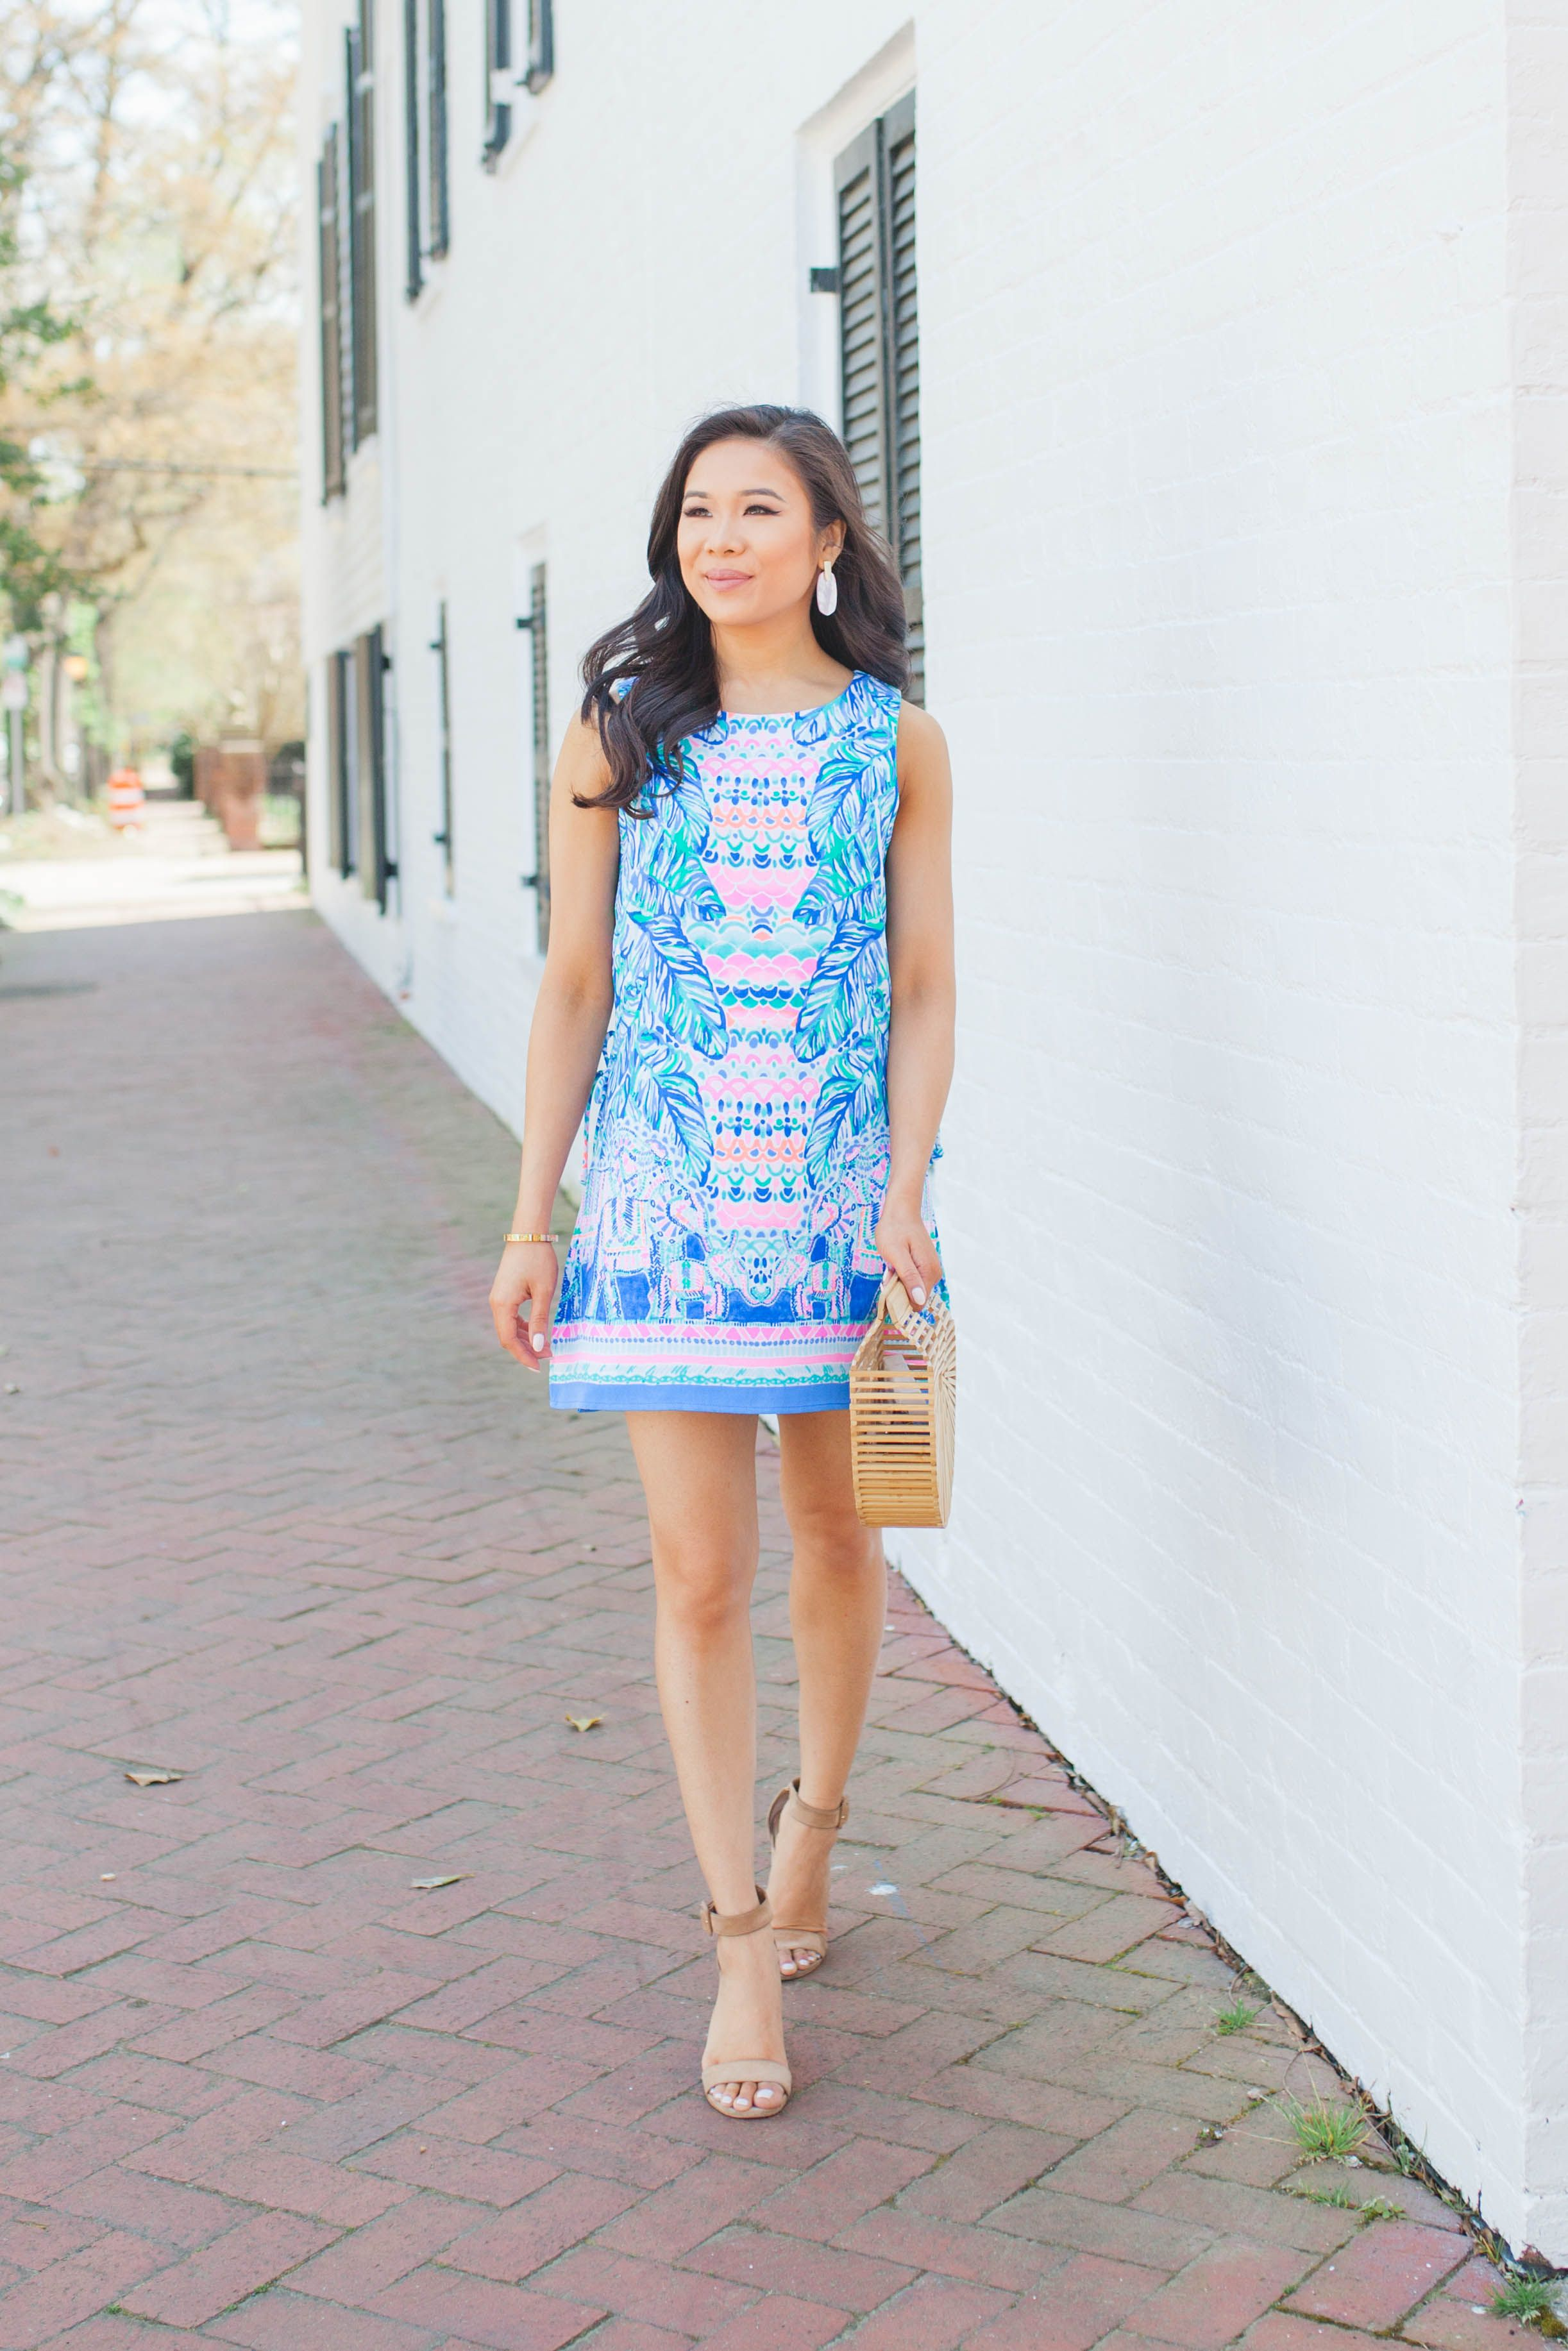 da160372e1ee6 Lilly Pulitzer Donna Romper with Cult Gaia bamboo bag and Kendra Scott  earrings on blogger Hoang-Kim